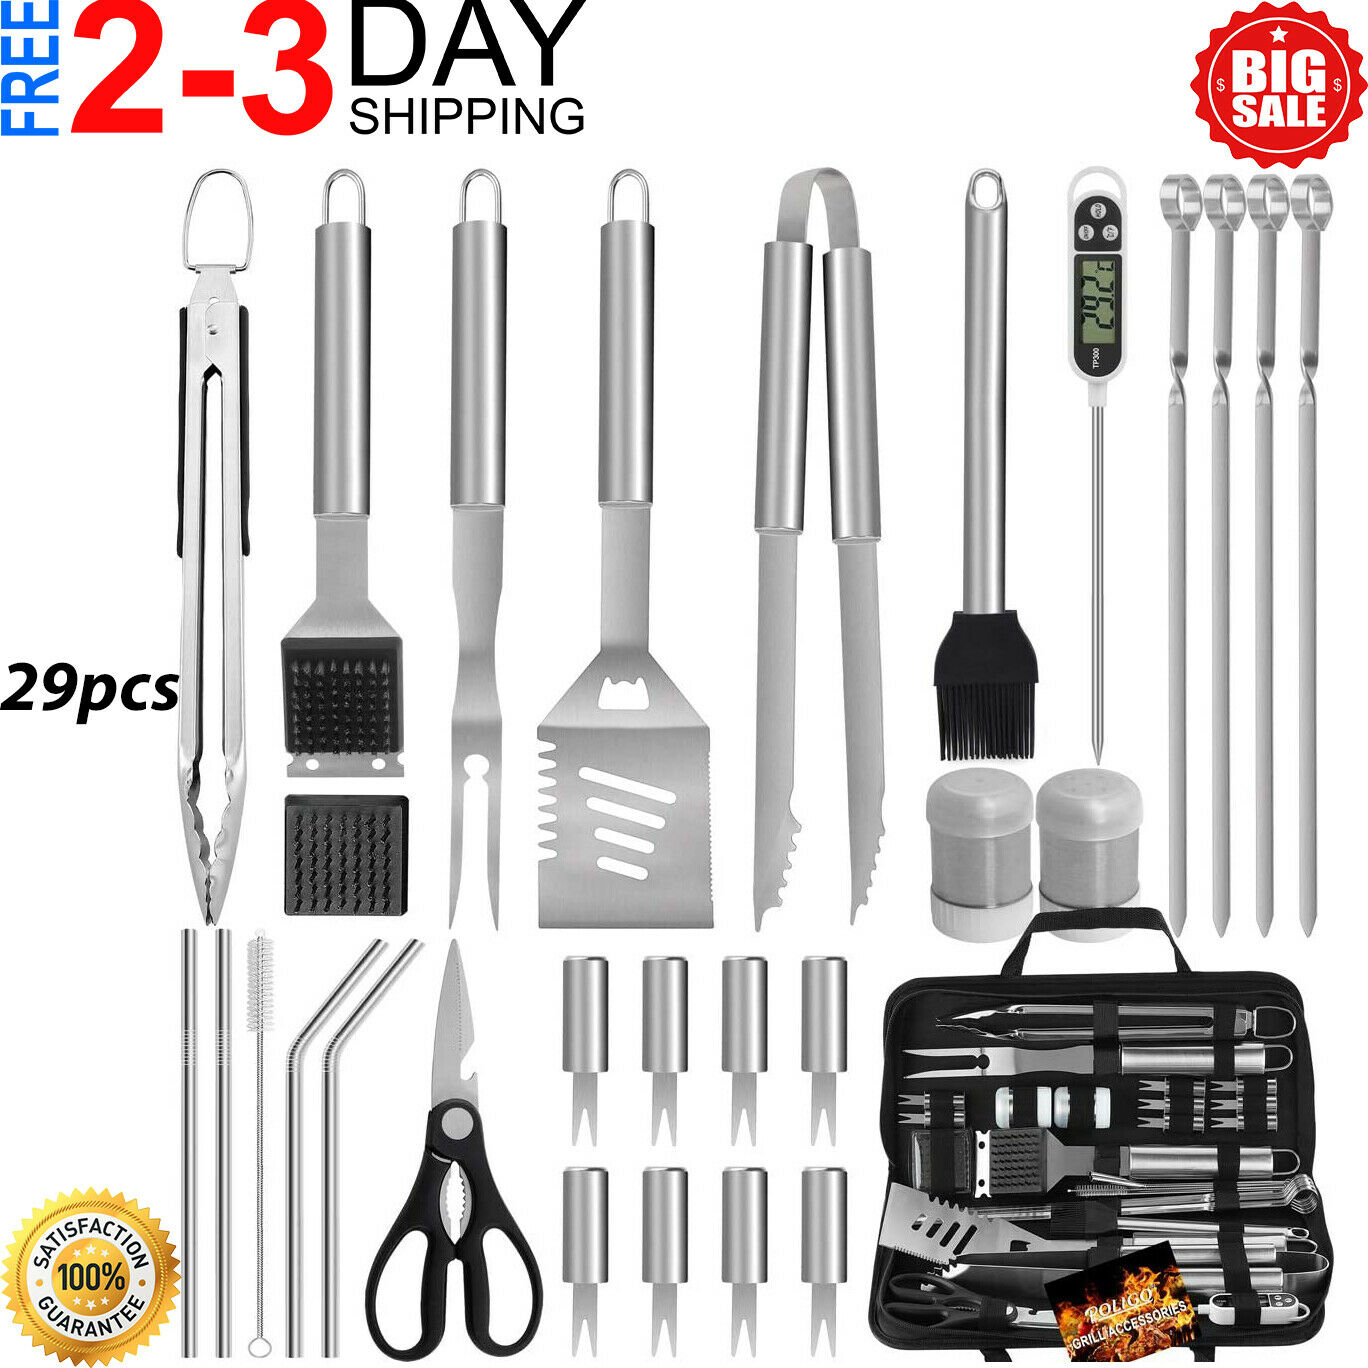 Blackstone Grill Accessories Kit, 29PCS Griddle Barbecue Too